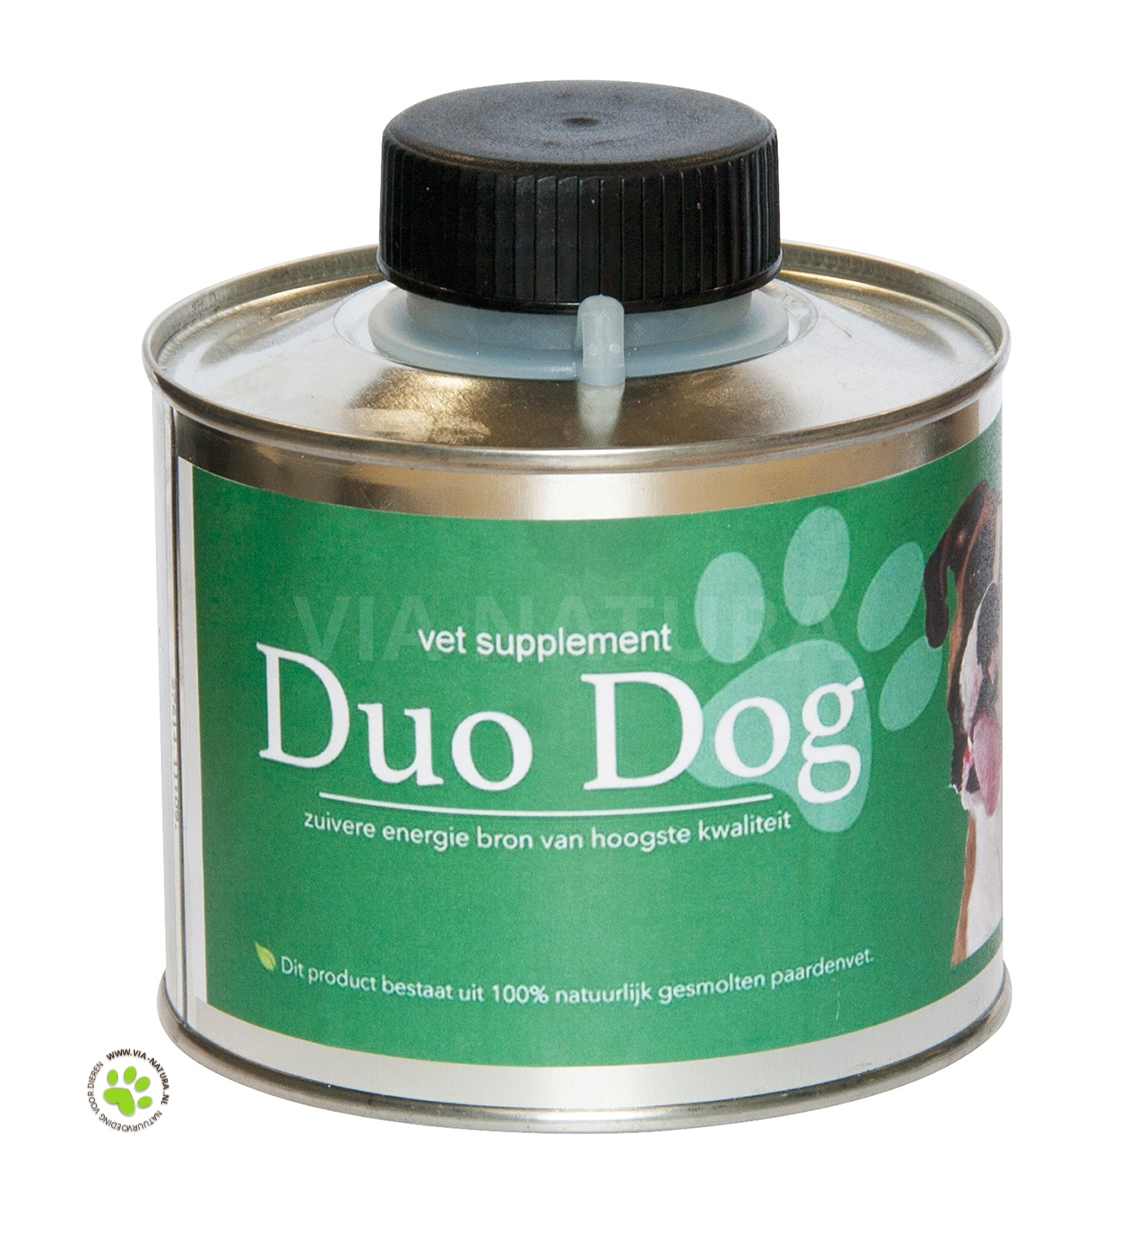 FRAMA DUO DOG VETSUPPLEMENT - NATURE BEST FOR PETS (500 ML)